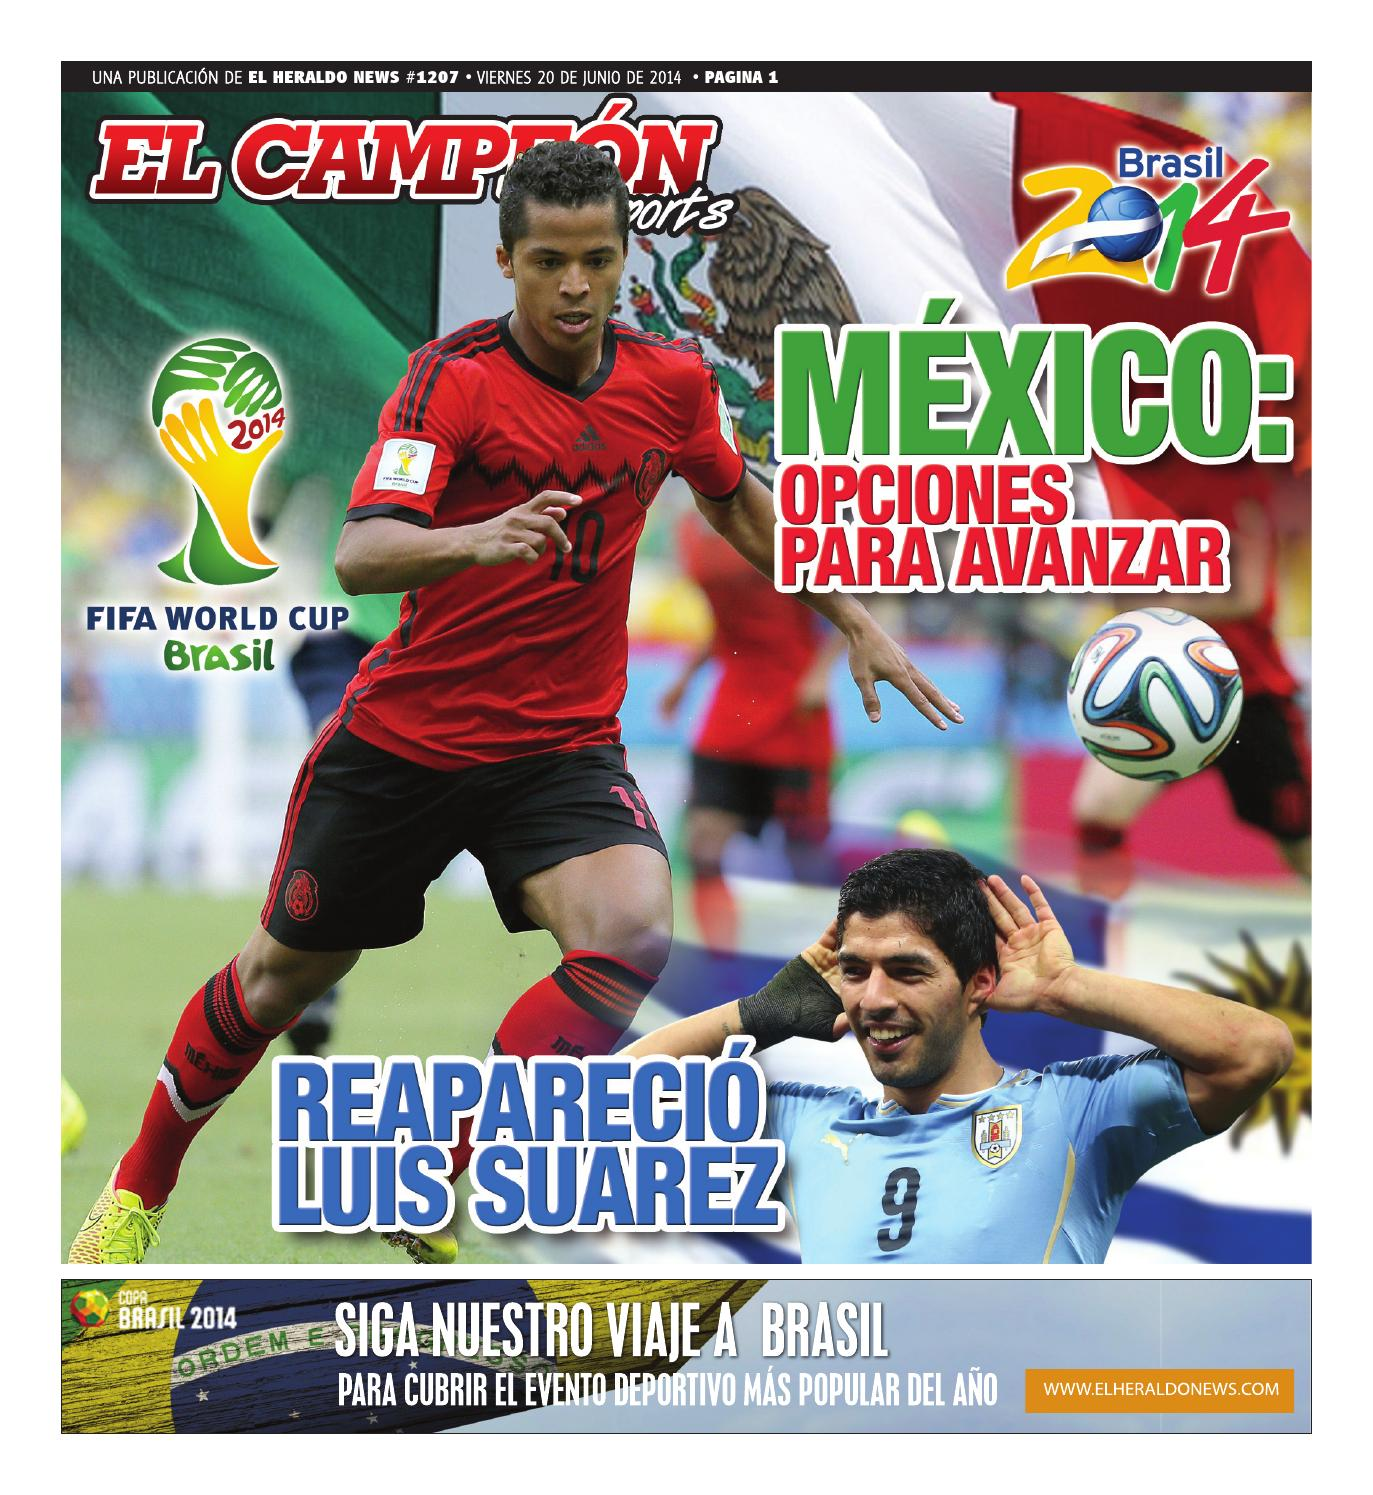 dbb7be25177fd Elcampeon jun20 2014 by El Heraldo News - issuu